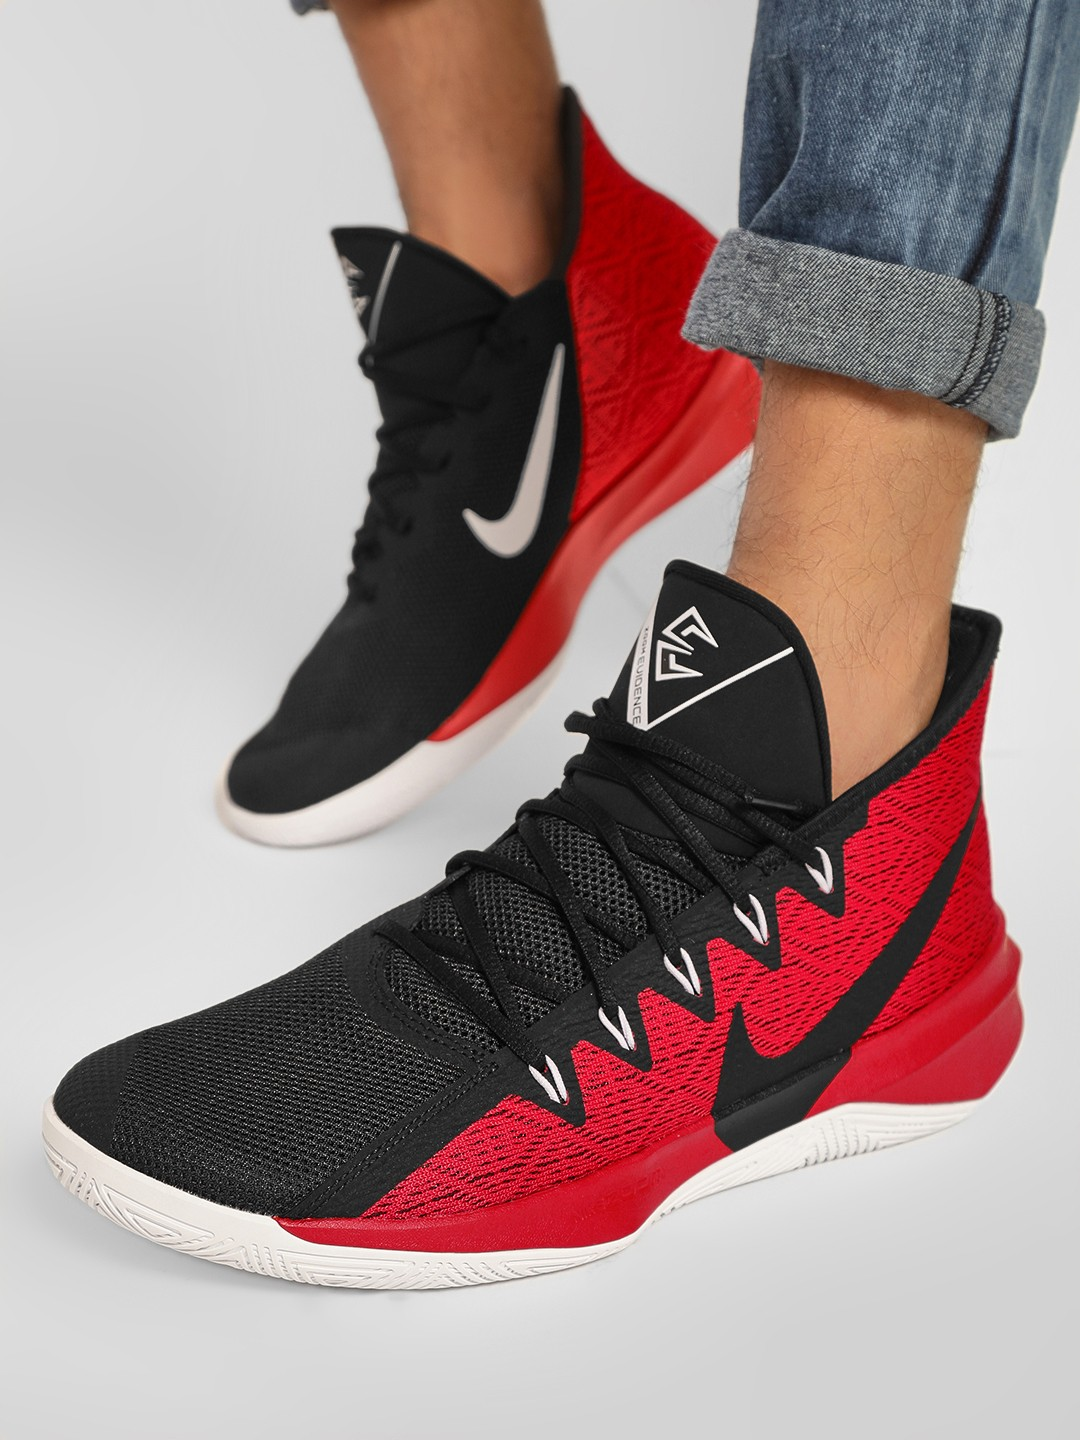 Nike Red Zoom Evidence 3 Shoes 1